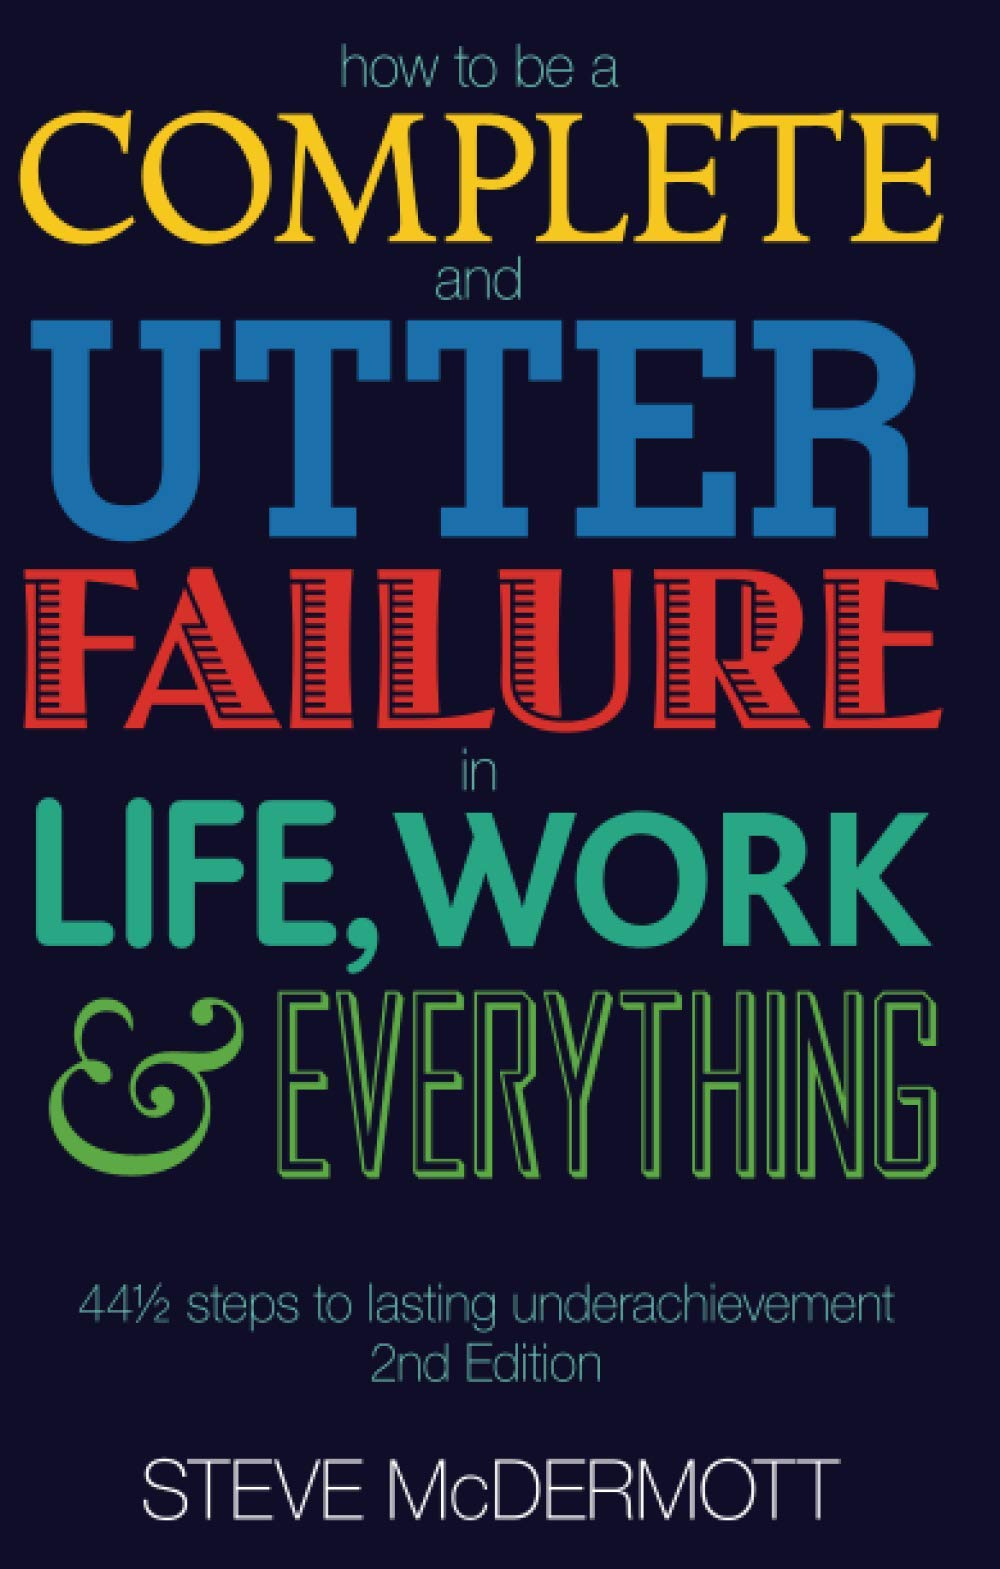 How to be a Complete and Utter Failure in Life, Work and Everything: 44 1/2  steps to lasting underachievement (2nd Edition): Amazon.co.uk: McDermott,  Steve: 9780273706076: Books